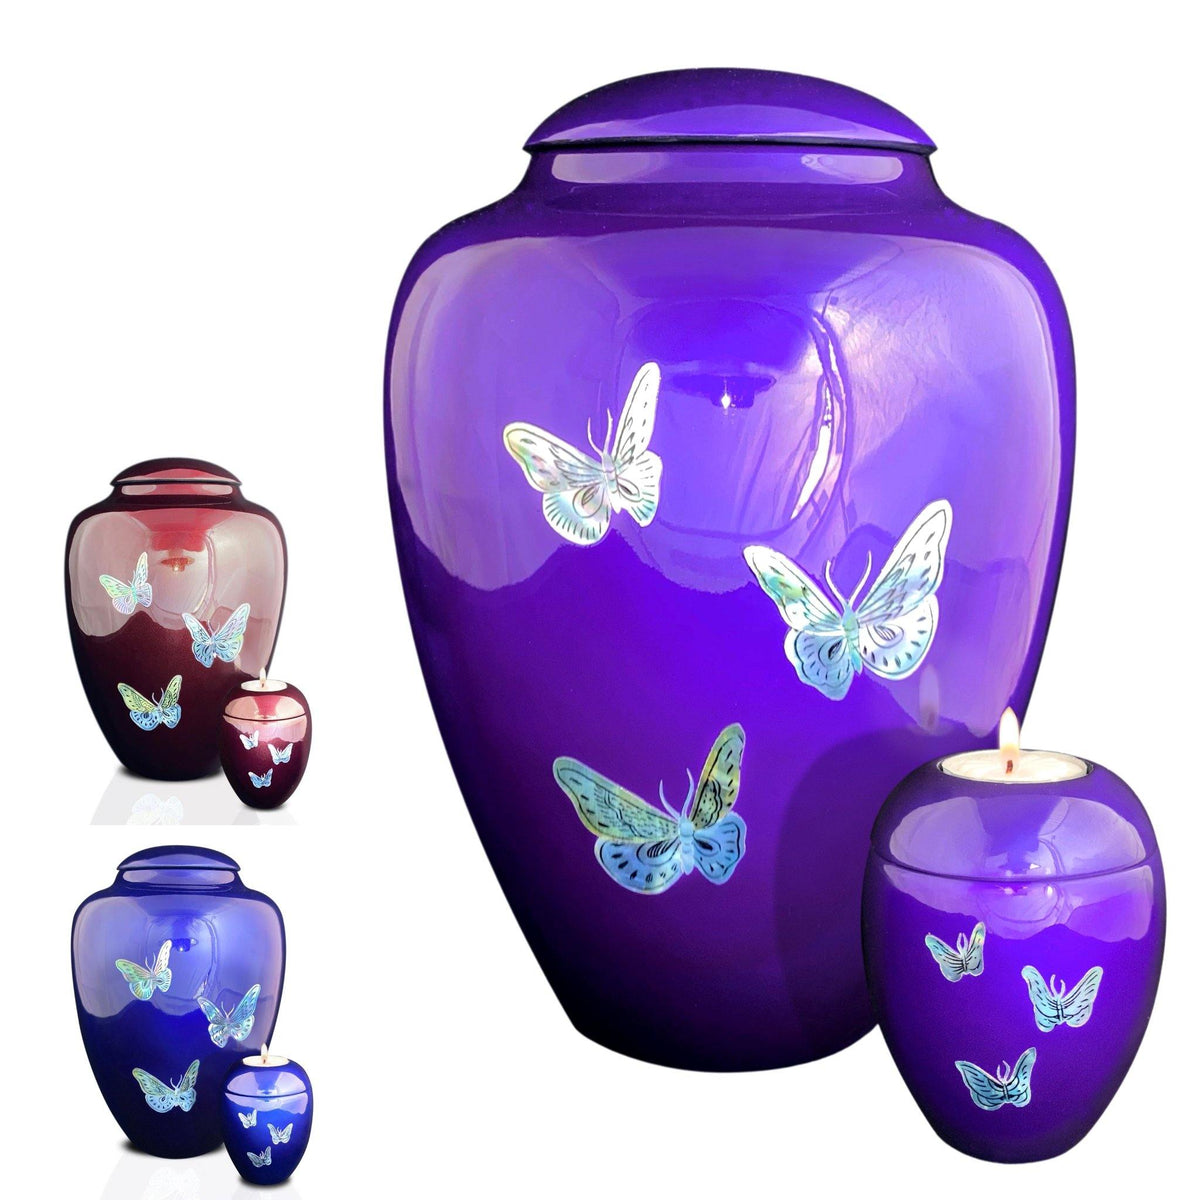 Eskdale  Butterflies Cremation Ashes Urn Range - Urns UK